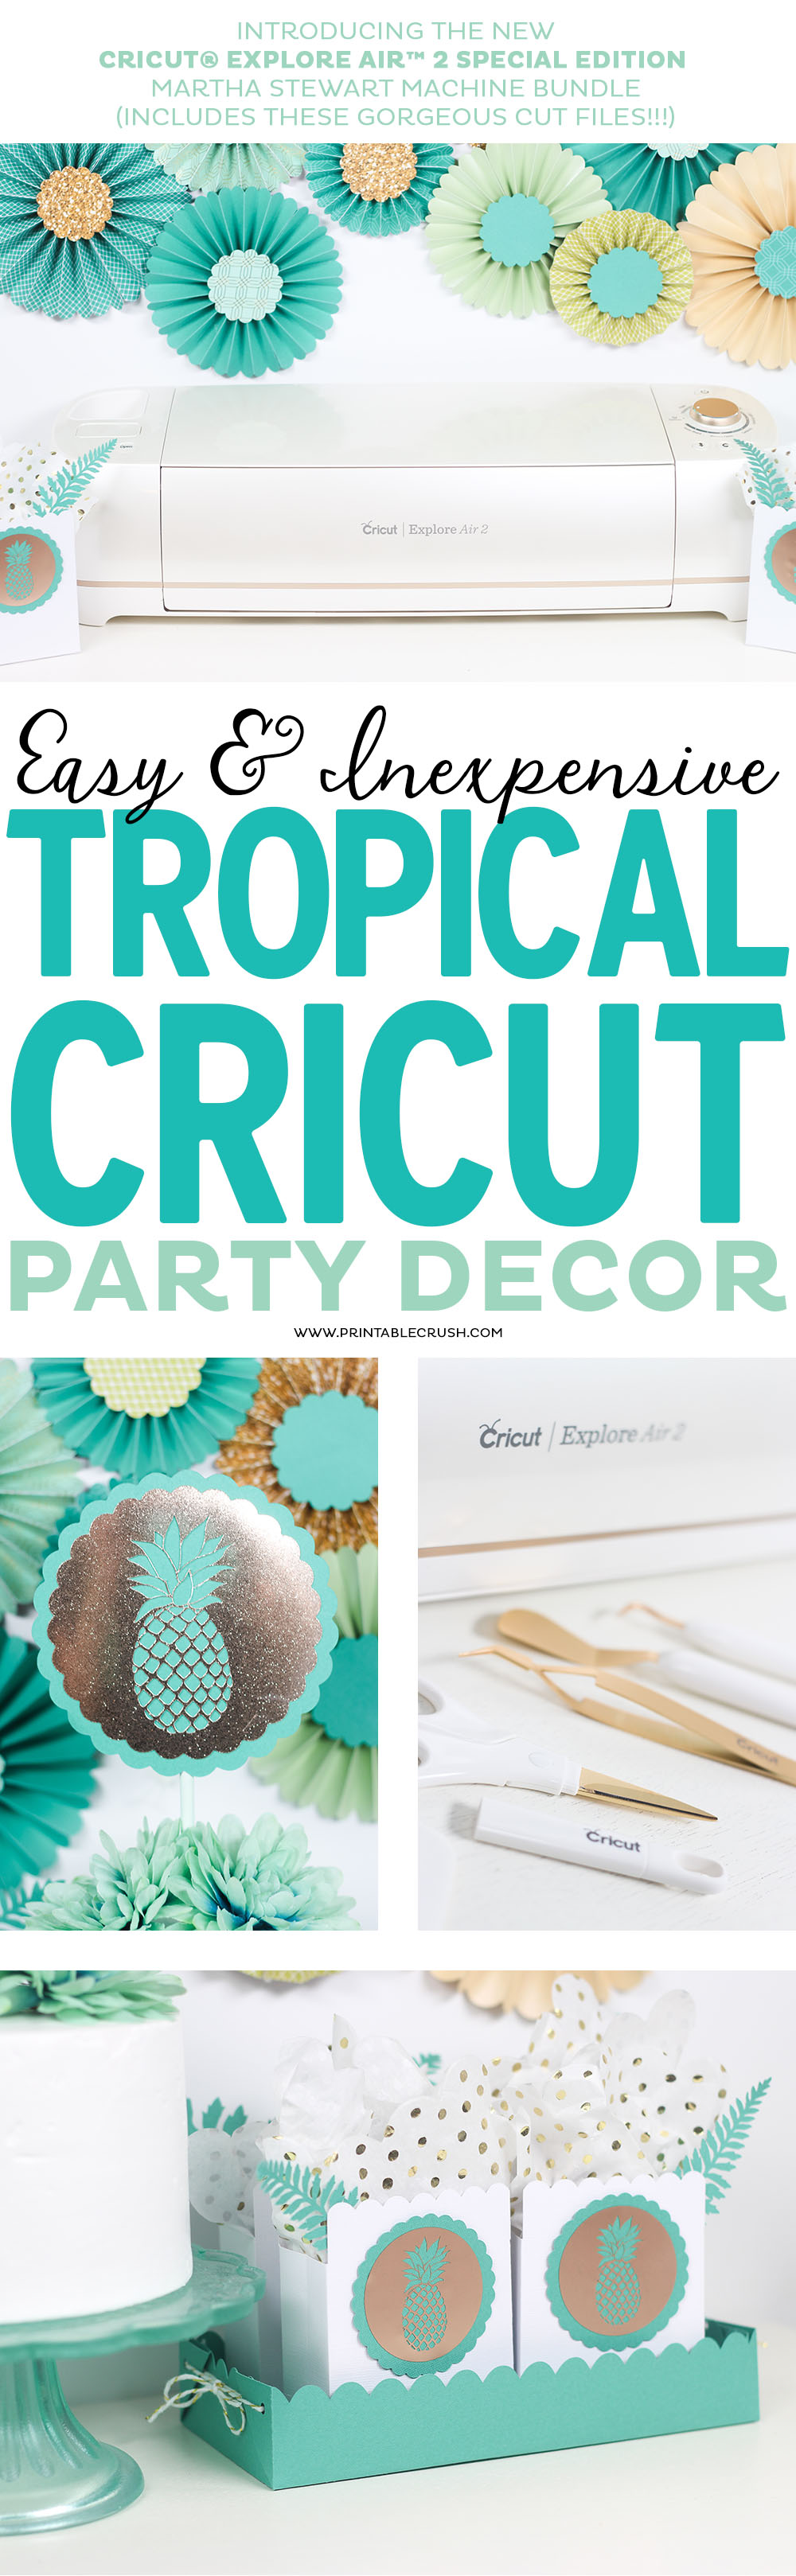 This tropical Cricut party decor is so simple to create with the new graphics included with the Martha StewartCricut® Explore Air™ 2 Special Edition! #ad, #CricutMarthaStewart, #MadeWithMichaels #CricutMade #Cricut